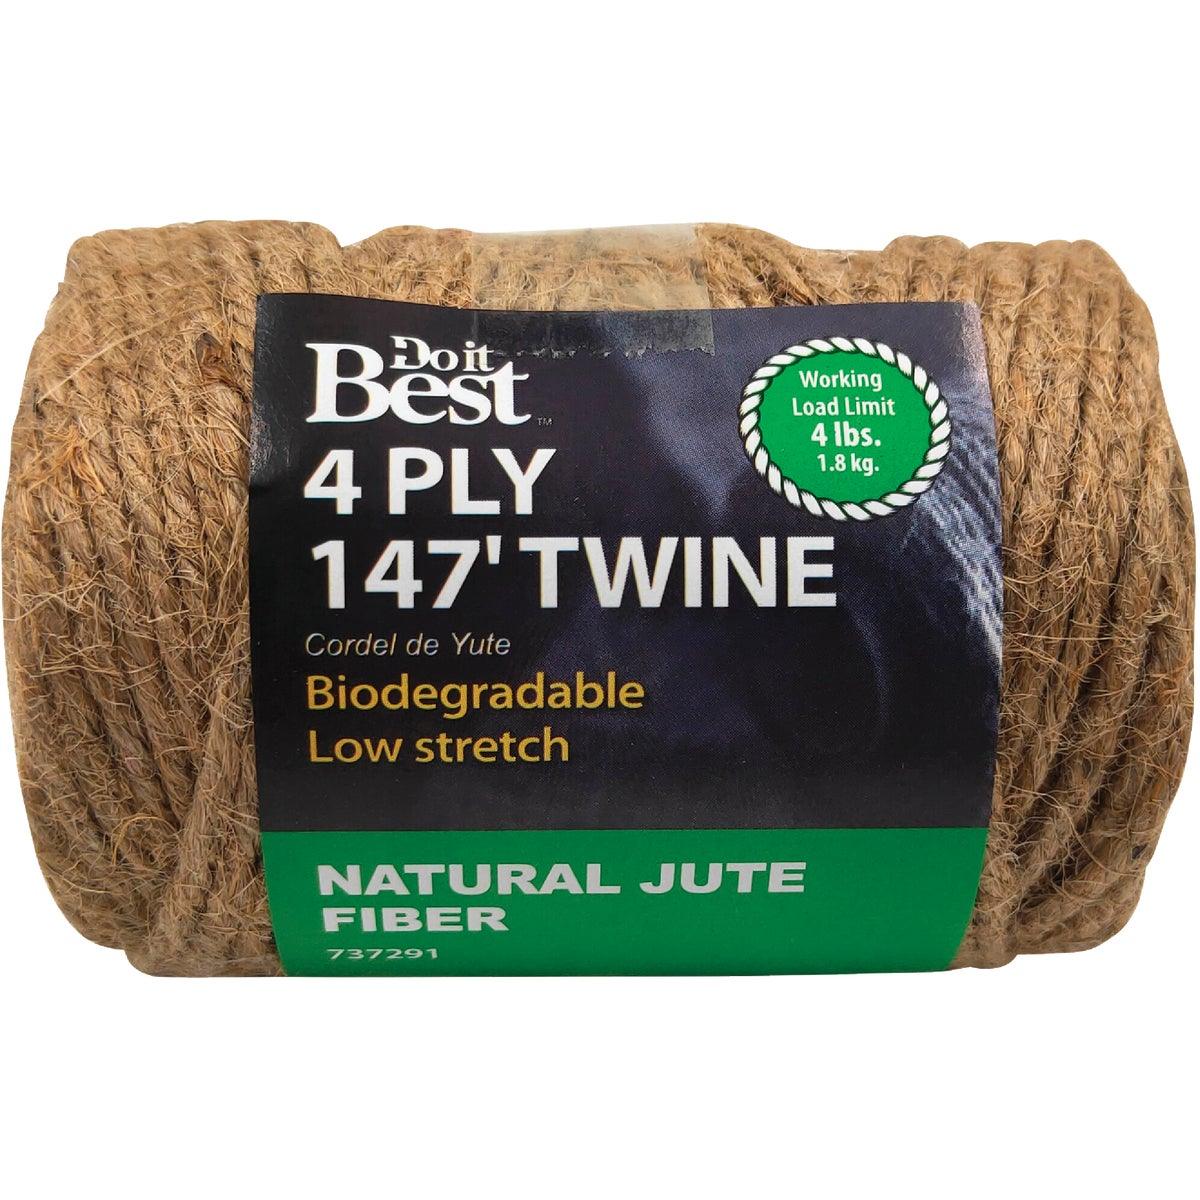 4PLY 147' JUTE TWINE - 737291 by Do it Best